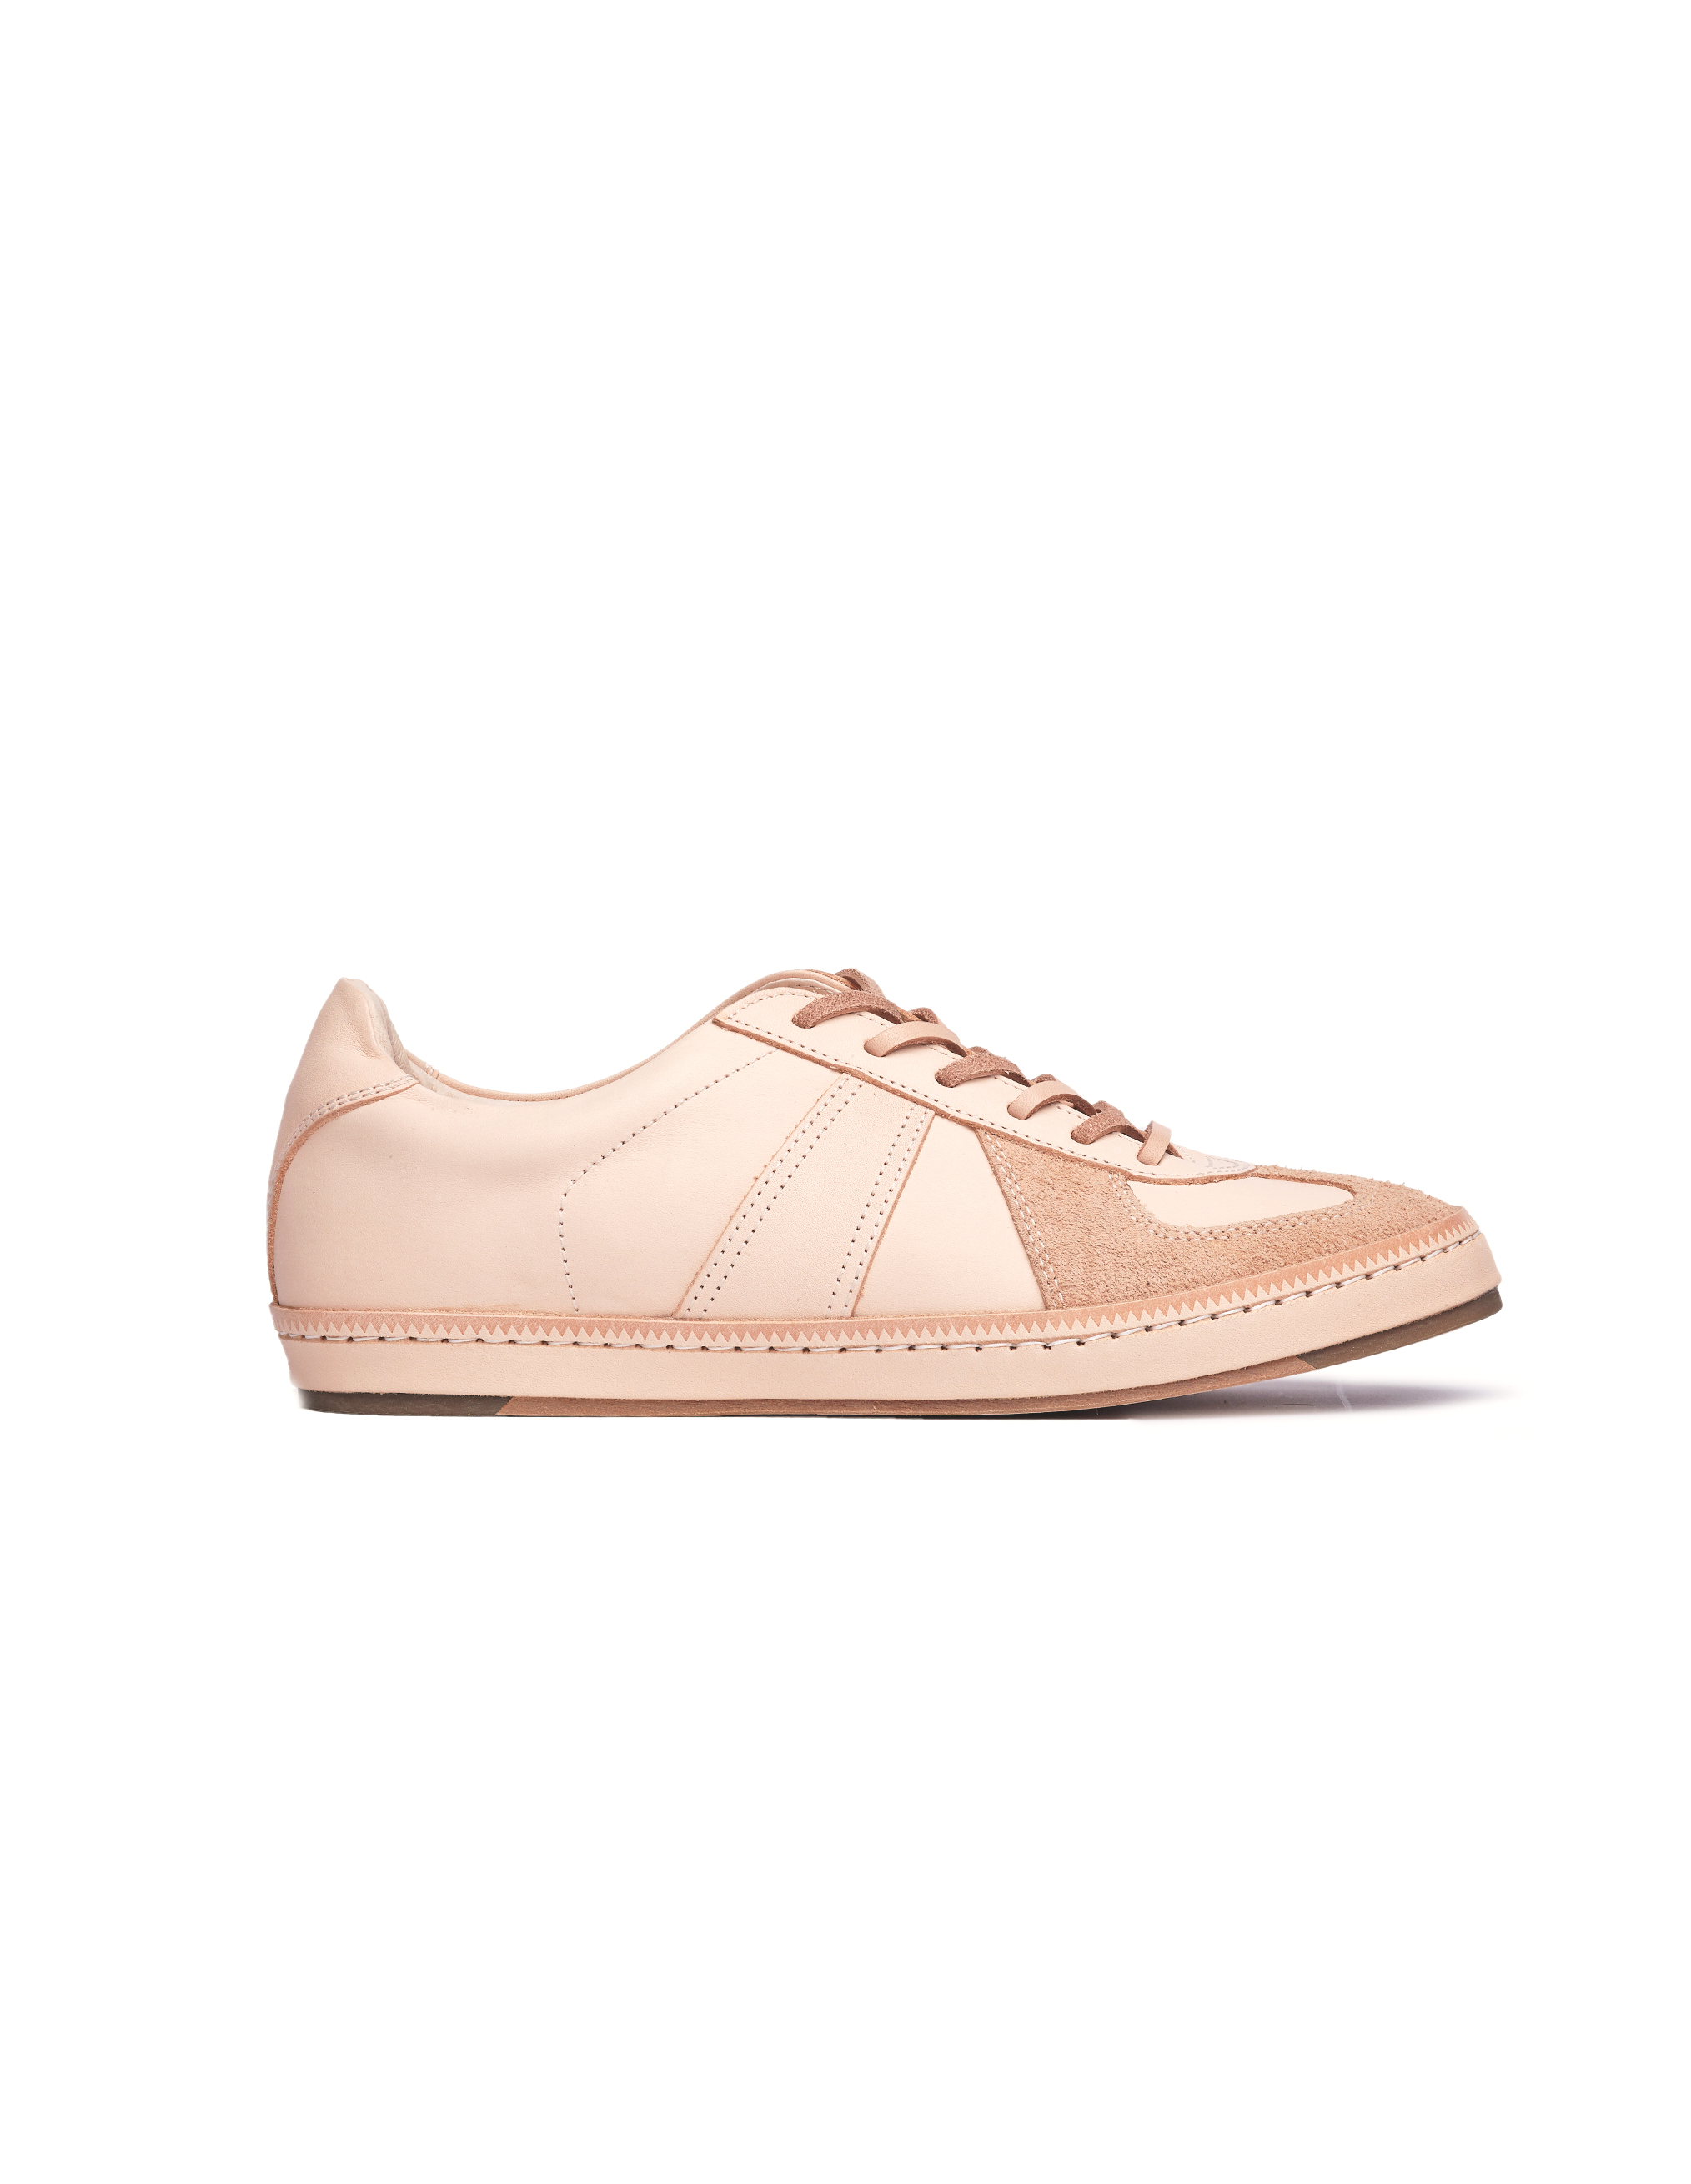 Hender Scheme Manual Indistrial Products 05 Sneakers